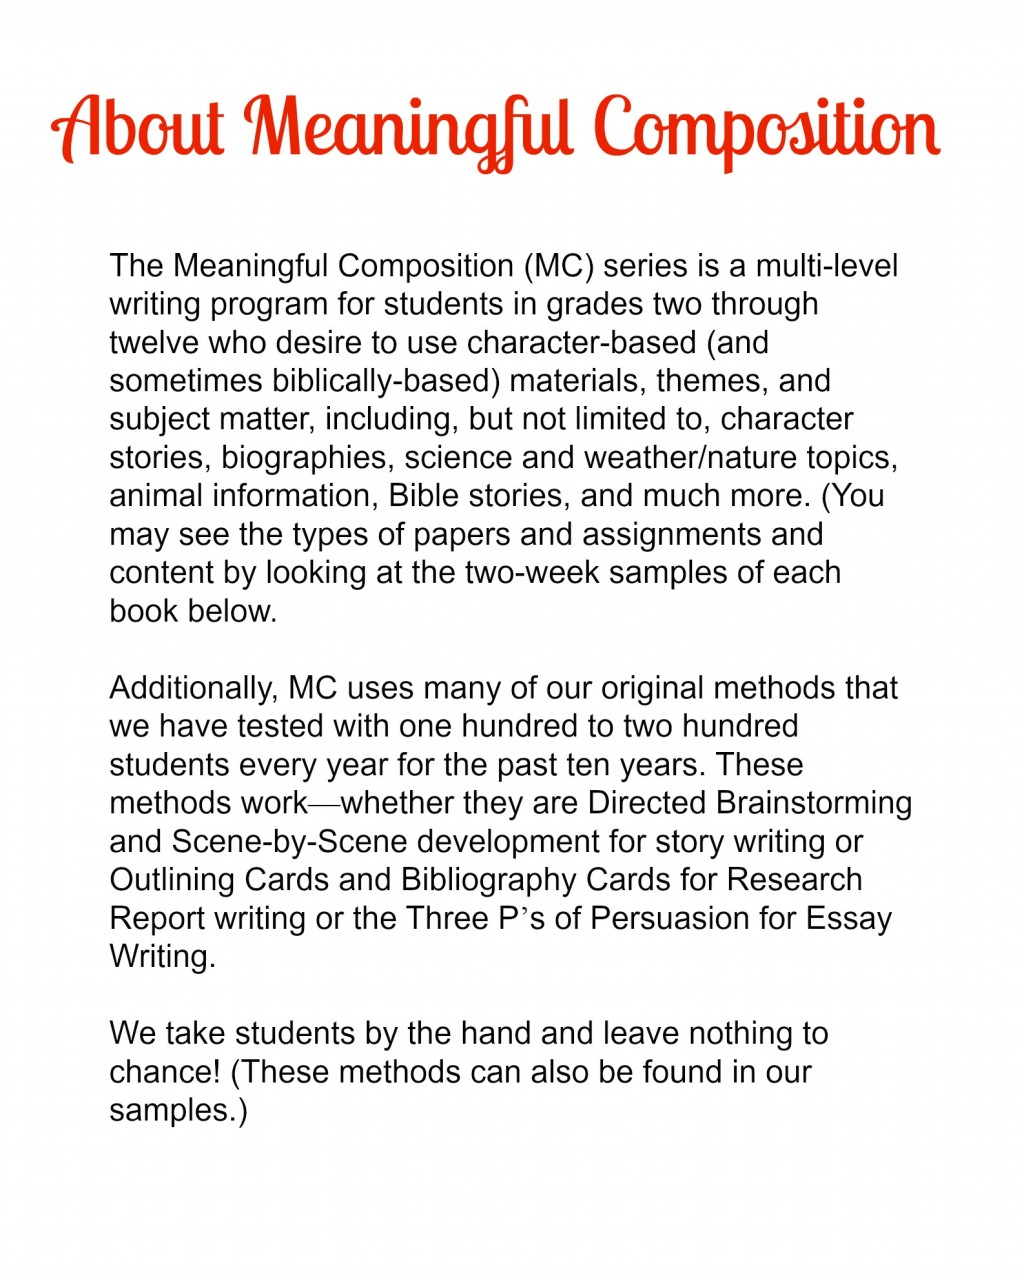 022 Examples Of Persuasive Essays Expository Essay Introductions Creative Writing Course Paragraph On Bullying About Meaningful Compos Cyber How To Prevent Five Excellent 5th Grade Written By Graders Example Argumentative-persuasive Topics Large